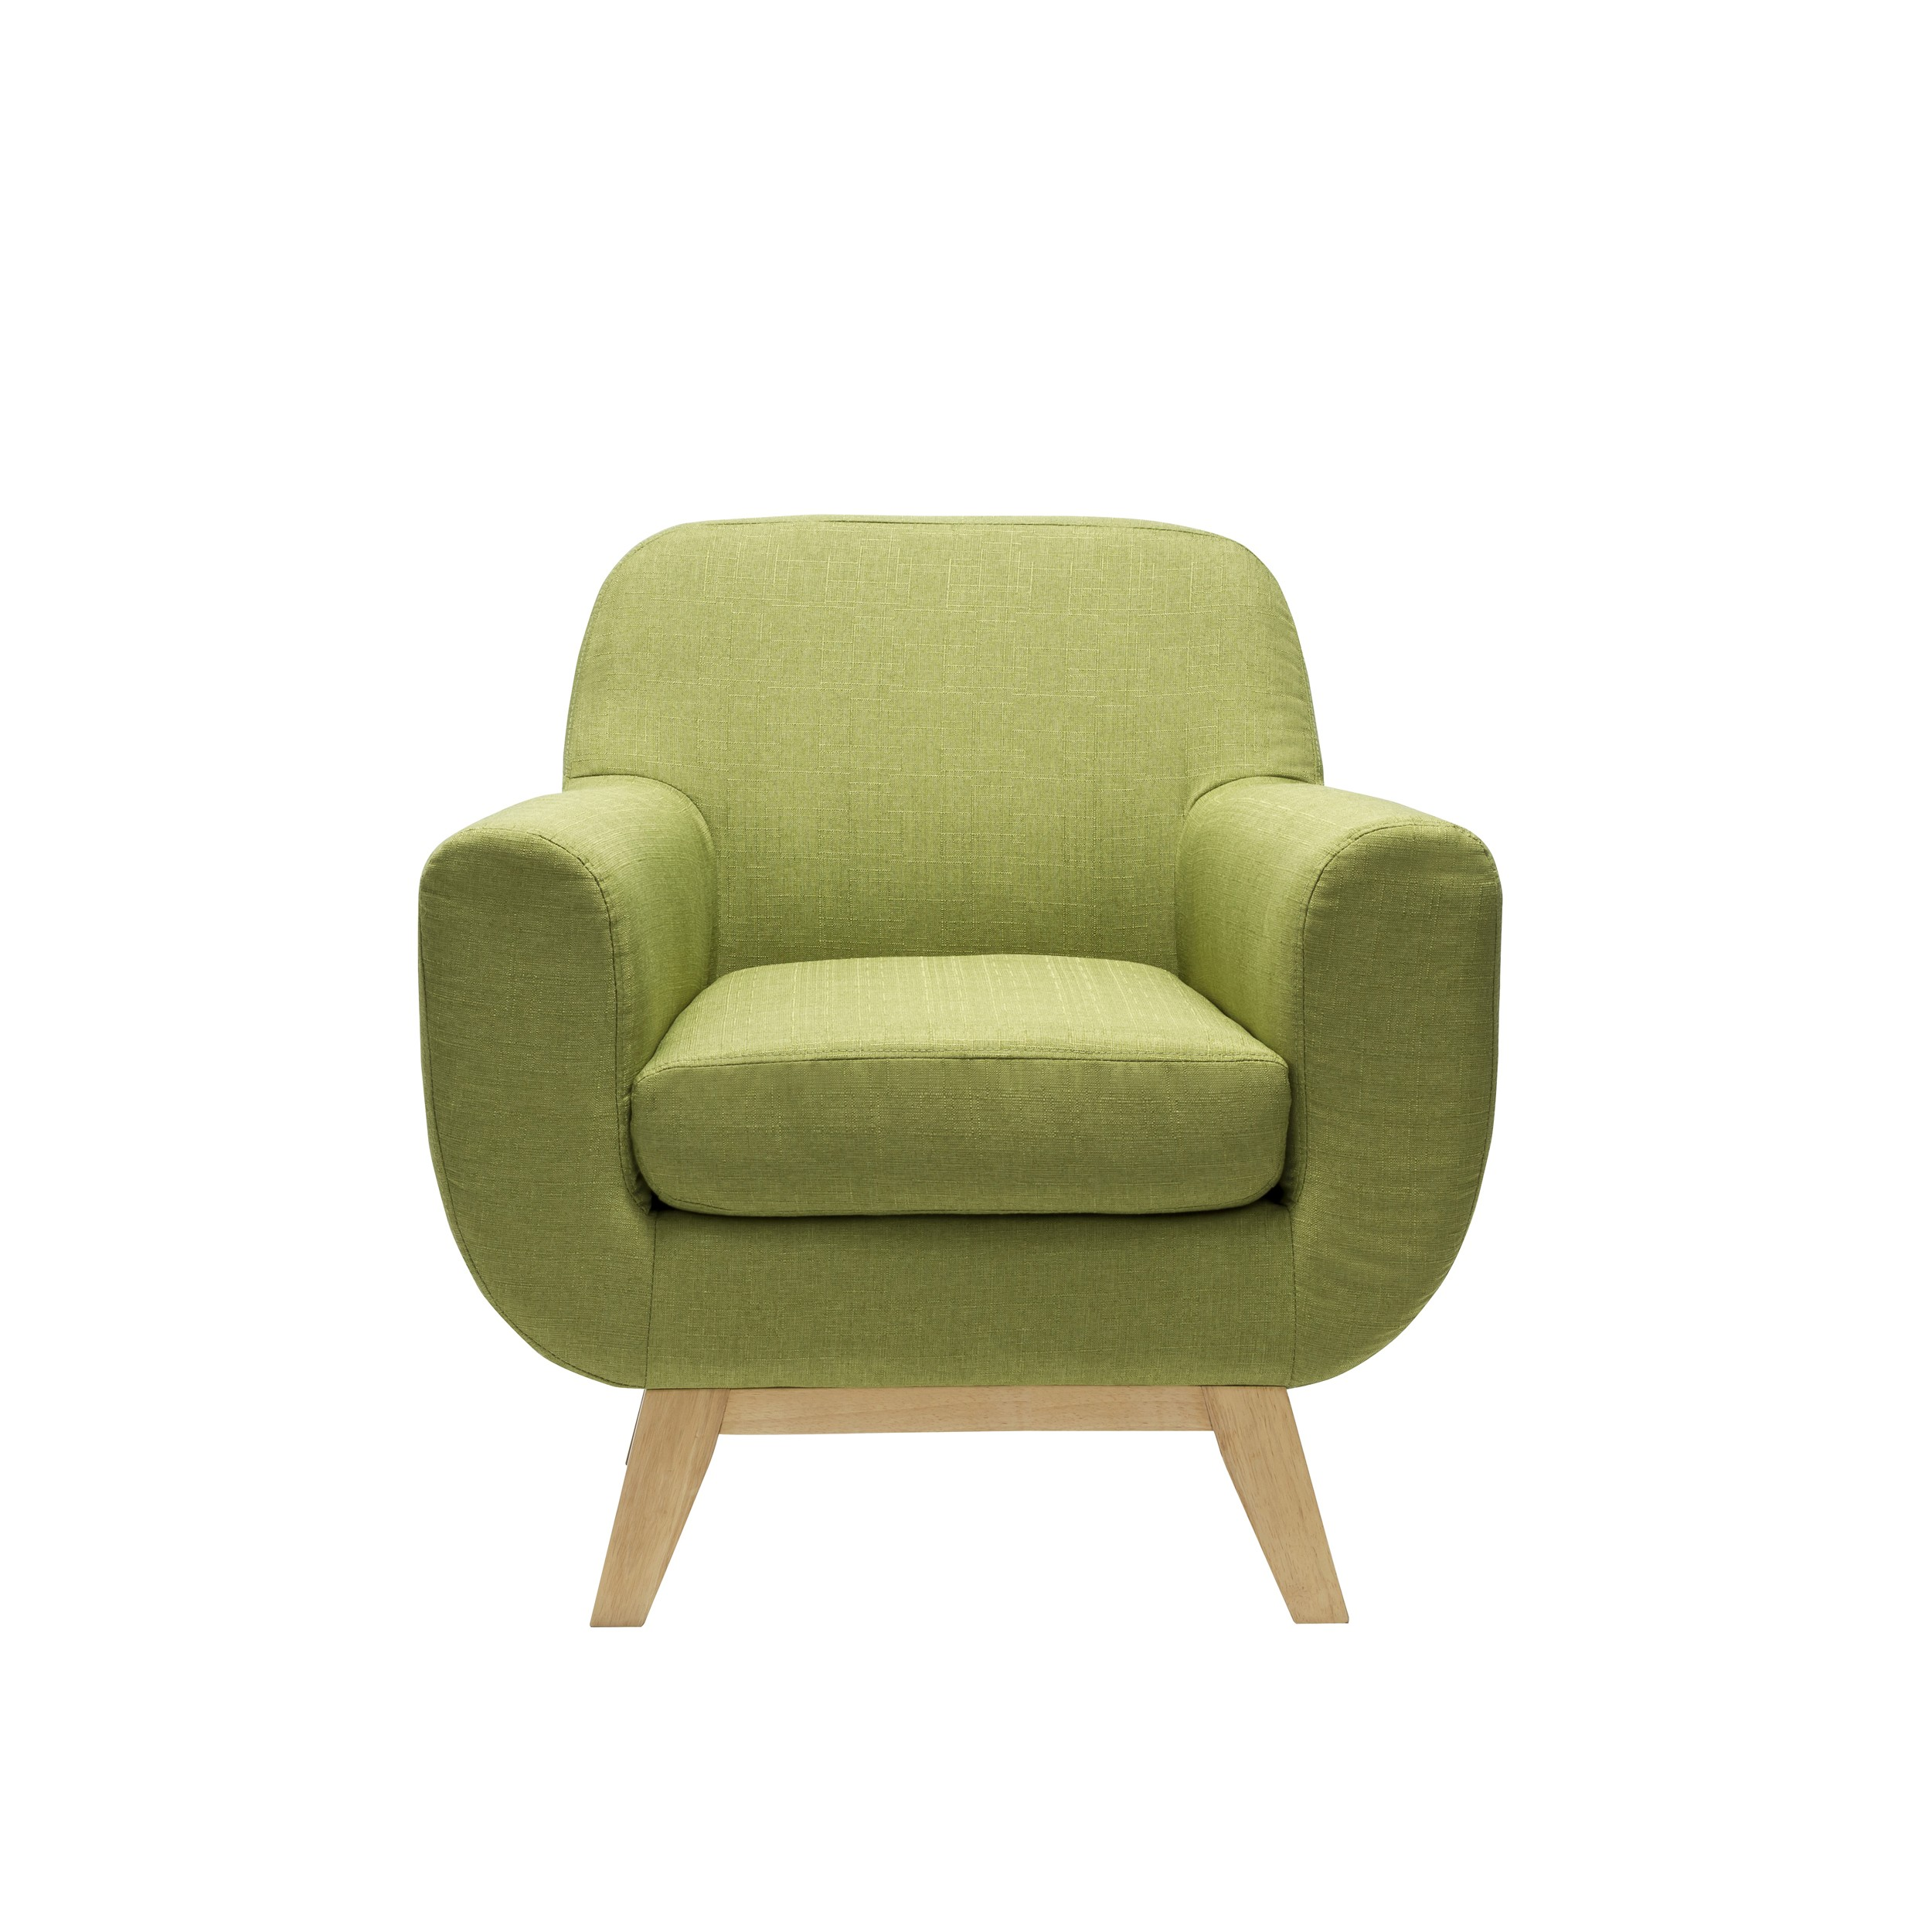 fauteuil copenhague vert commandez nos fauteuils copenhague verts design rdv d co. Black Bedroom Furniture Sets. Home Design Ideas